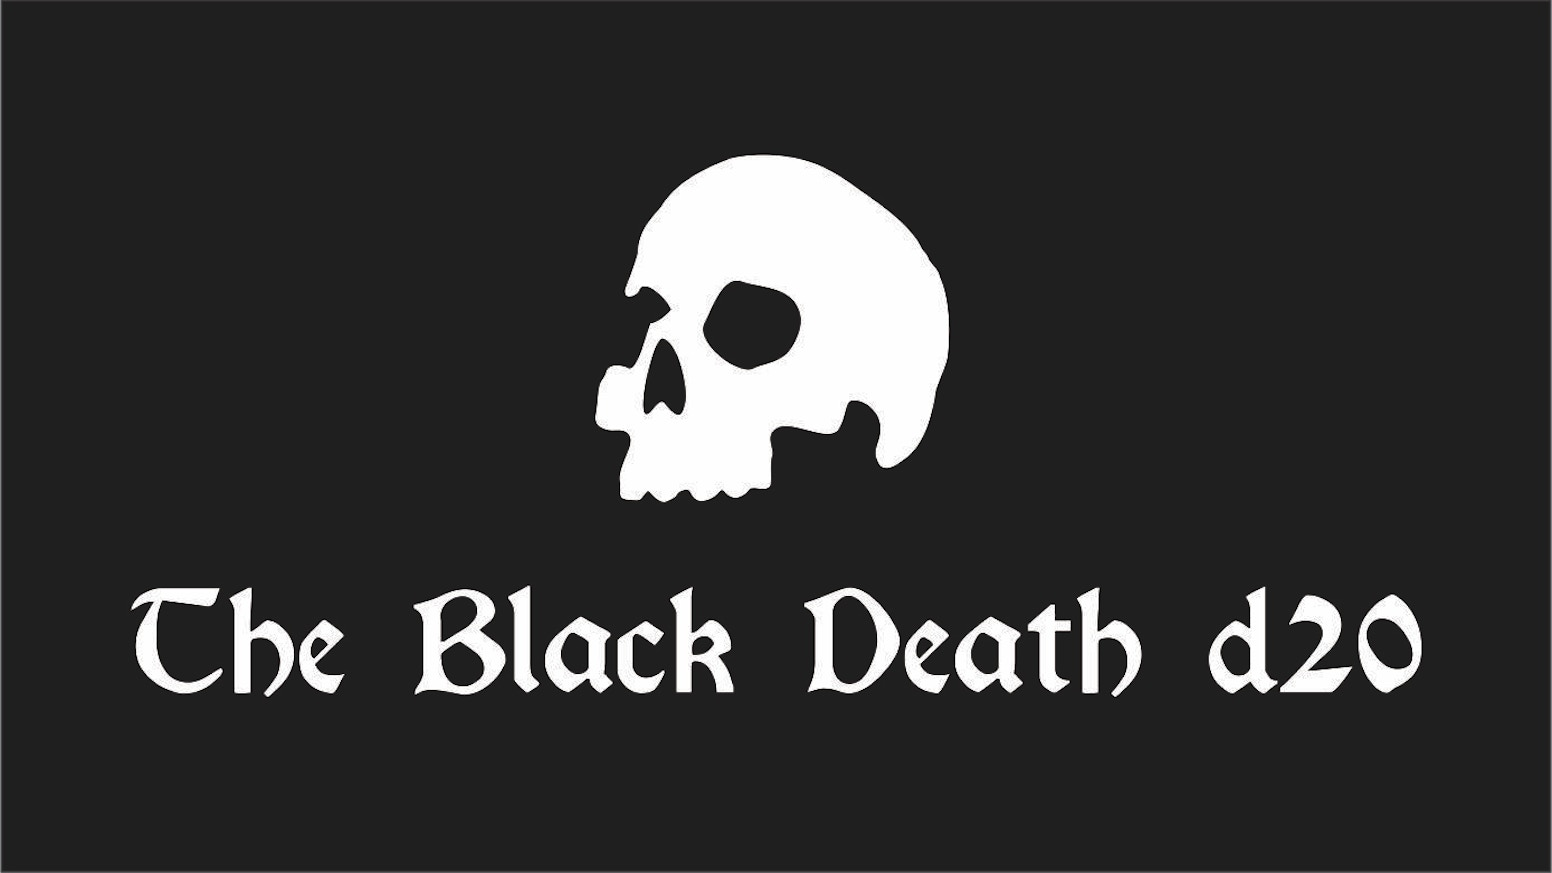 The Black Death has arrived! This ominous d20 will bring mayhem to your tabletop!